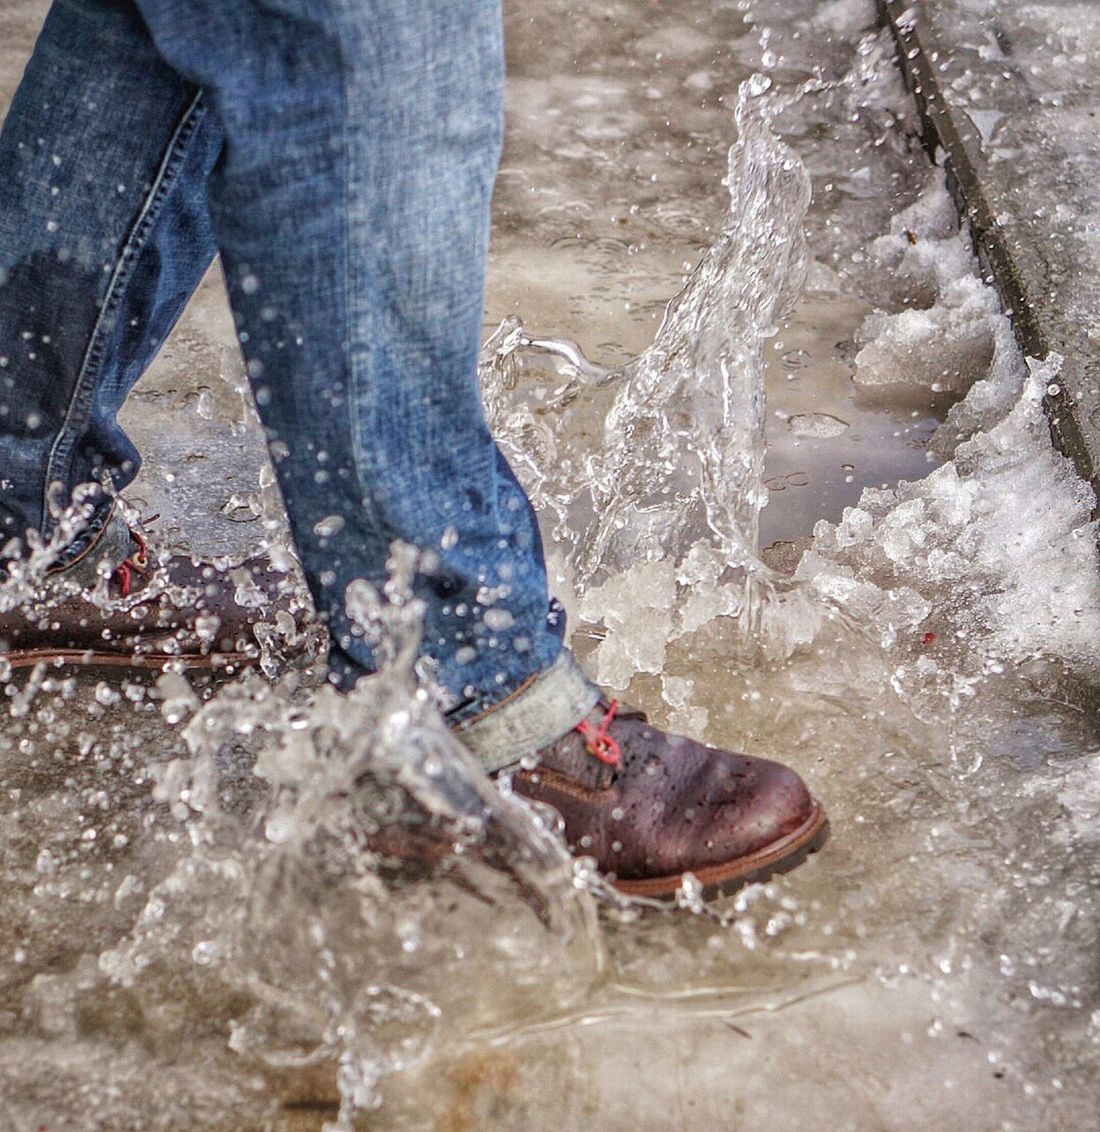 Low Section Human Leg Shoe Human Body Part One Person Day Splashing Water Outdoors Adults Only Close-up Adult People One Man Only Step Into The Water Melting Snow Tough Shoes Timberland Denim Man's Fashion Splash